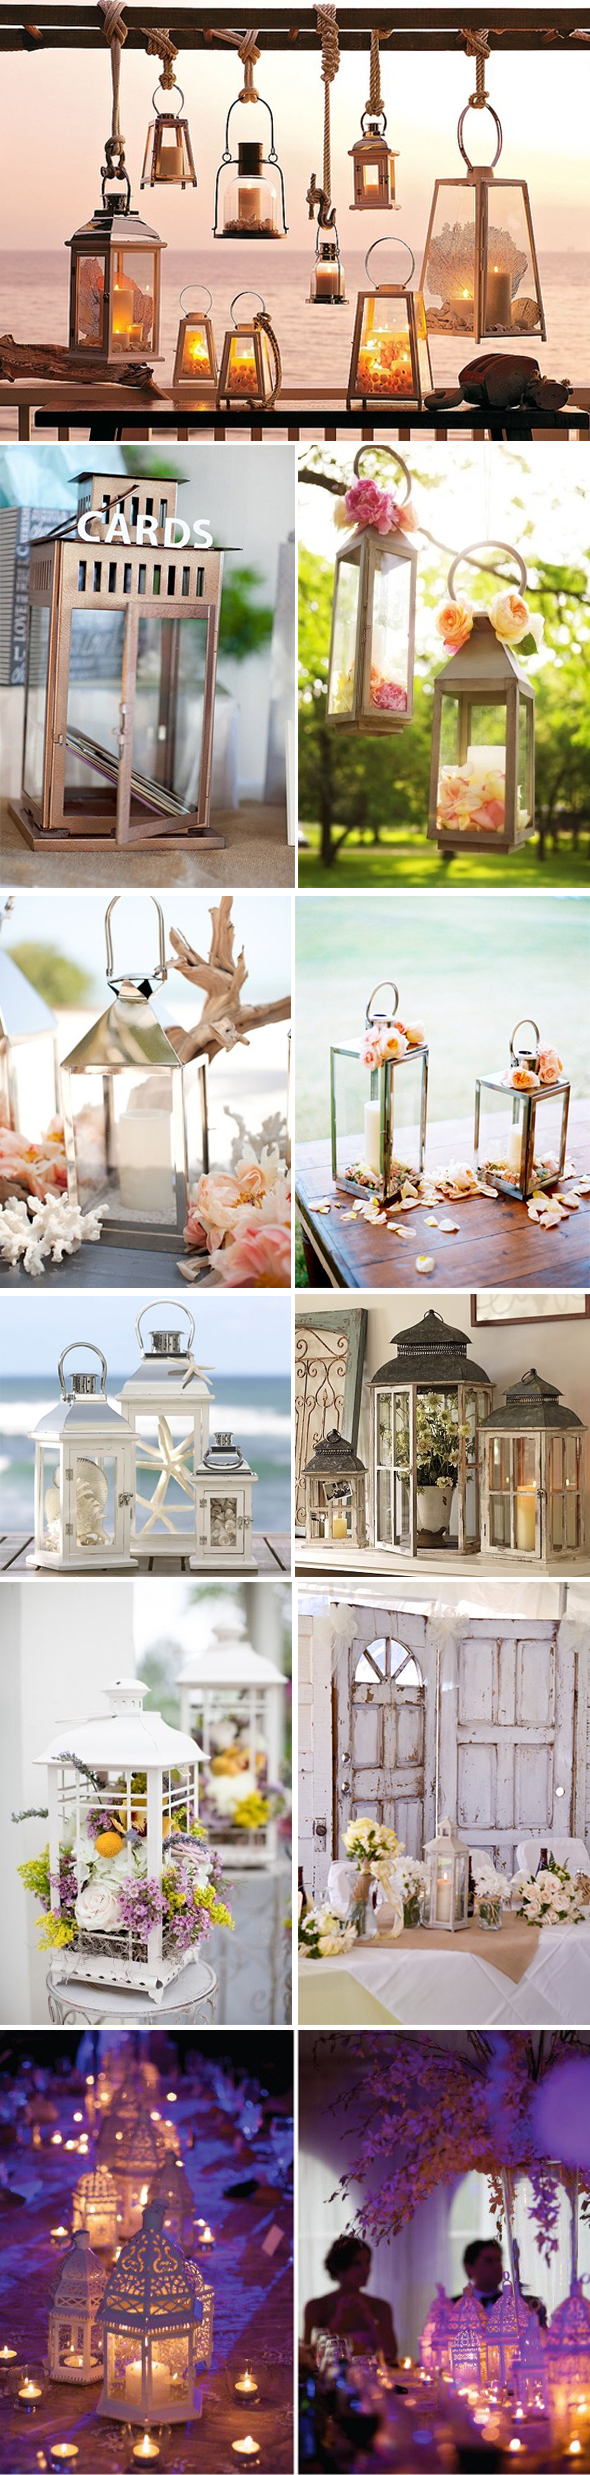 lantern wedding ideas